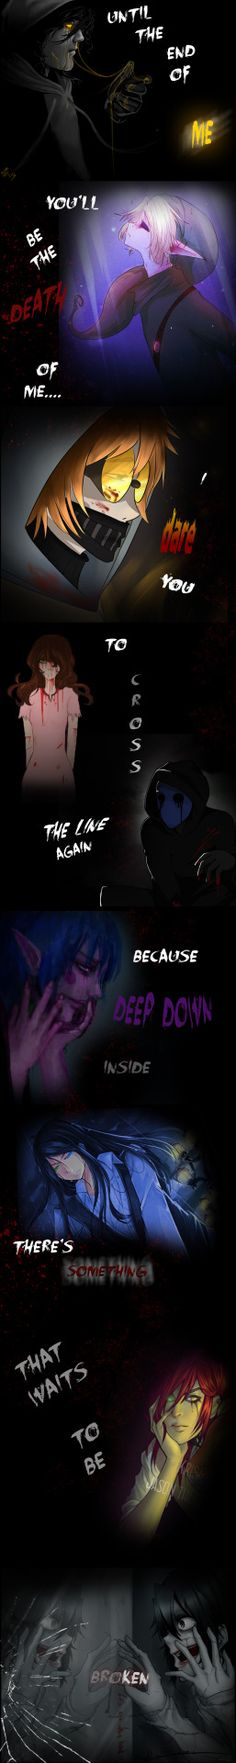 The Puppeteer, Ben Drowned , Ticci Toby Sally, Eyeless Jack, , Candy Pop, Nathan the Nobody, Jason the Toy Maker,  Jeff the Killer.  Lyric tribute!